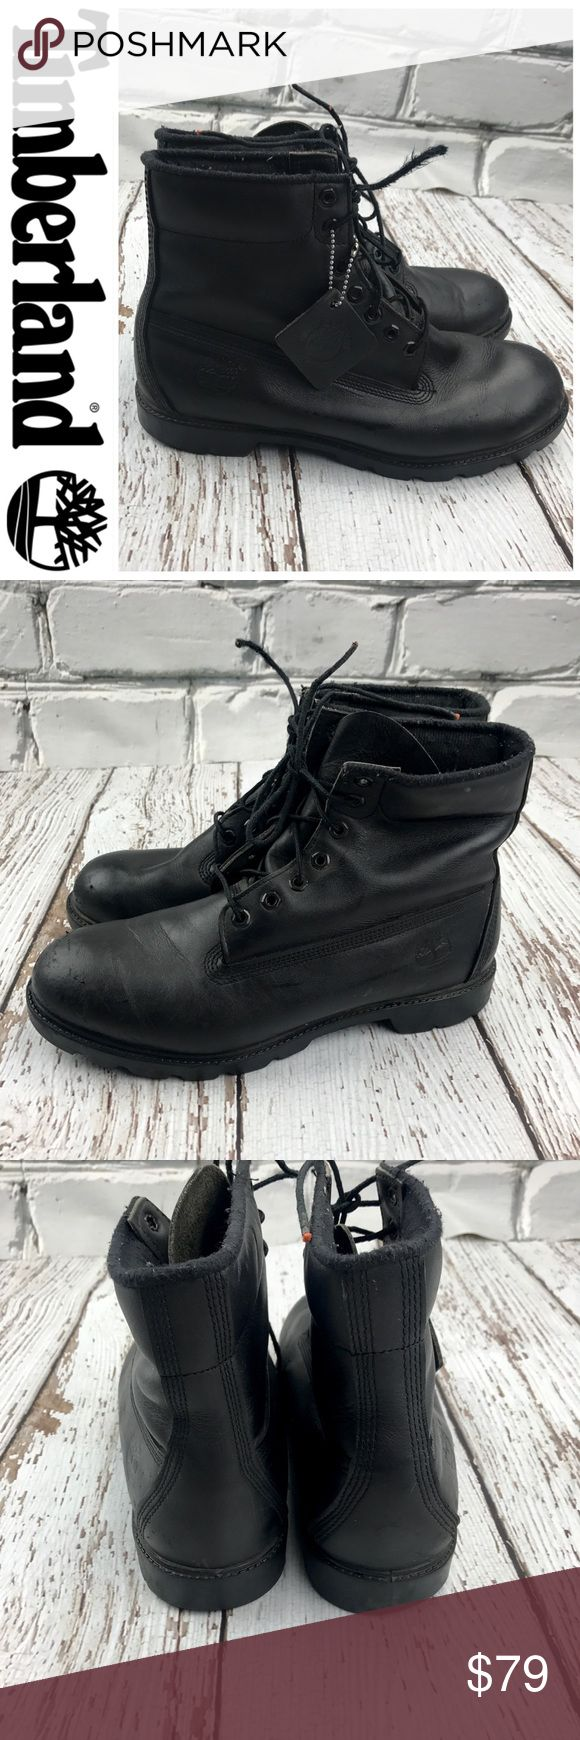 💕SALE💕Timberland Black Boots Awesome 💕Timberland Black Boots Timberland Shoes Boots